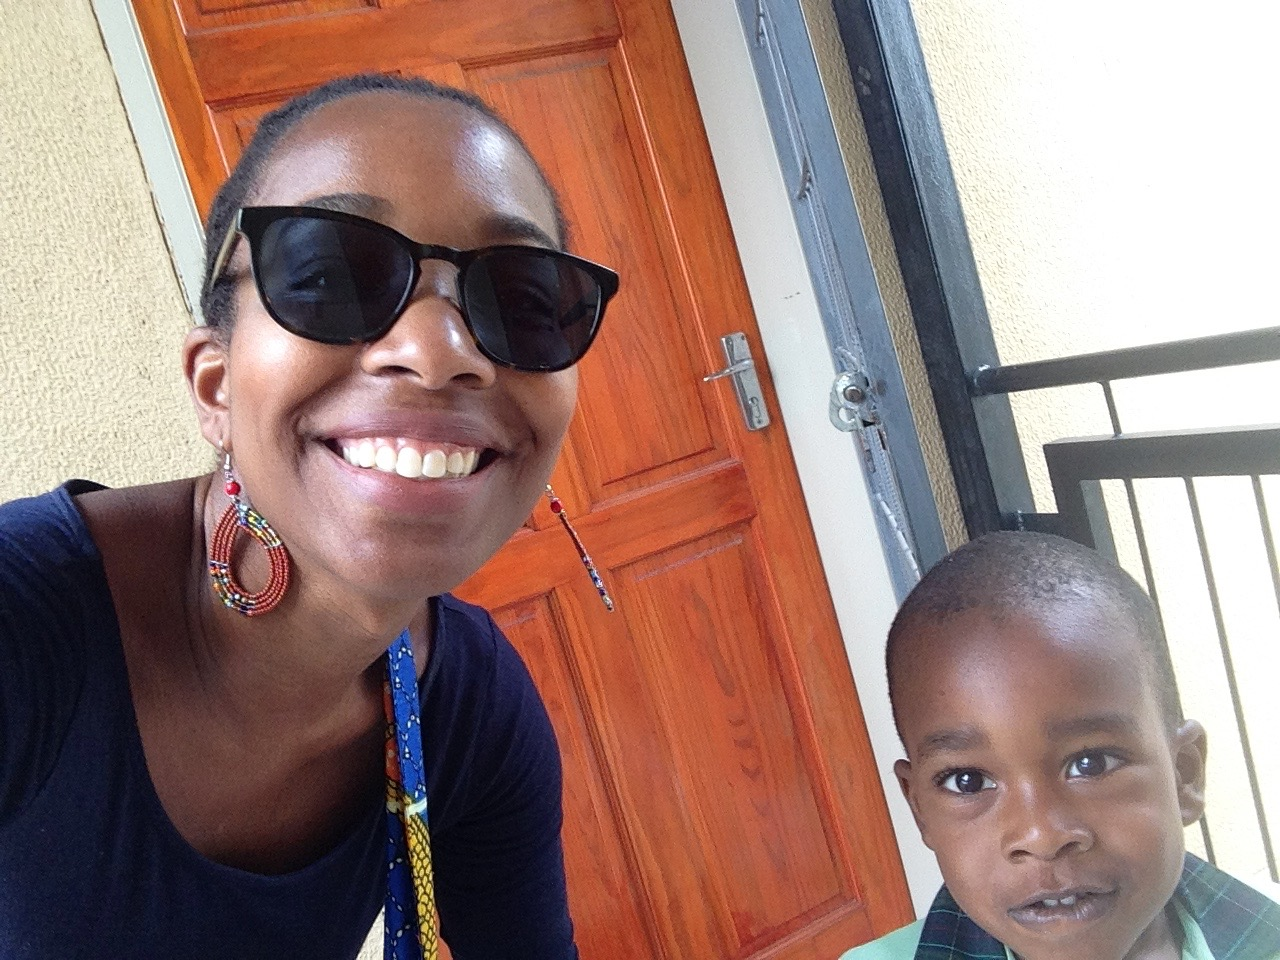 The author donning Warby Parker sunglasses with her son.